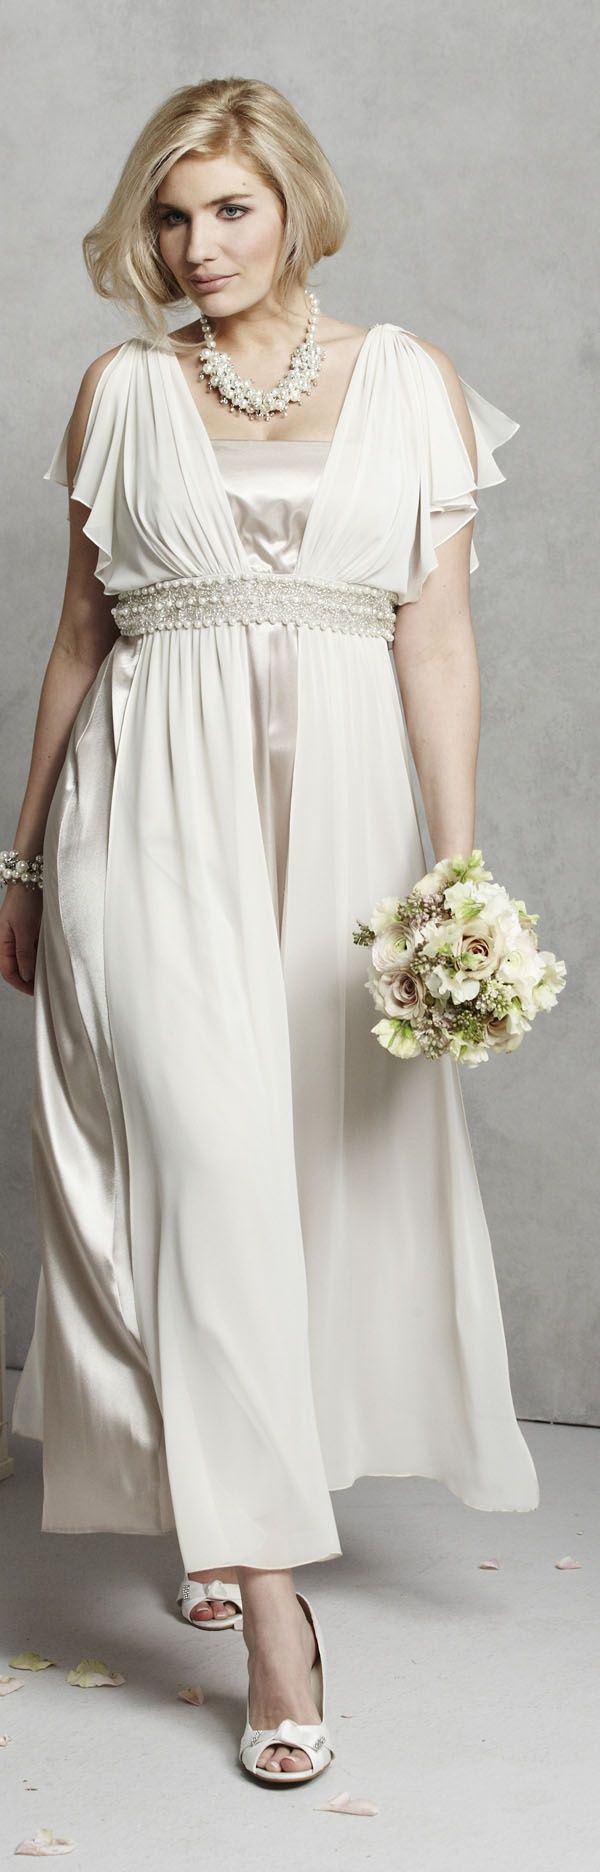 1000 ideas about hippie wedding dresses on pinterest for Alternative plus size wedding dresses